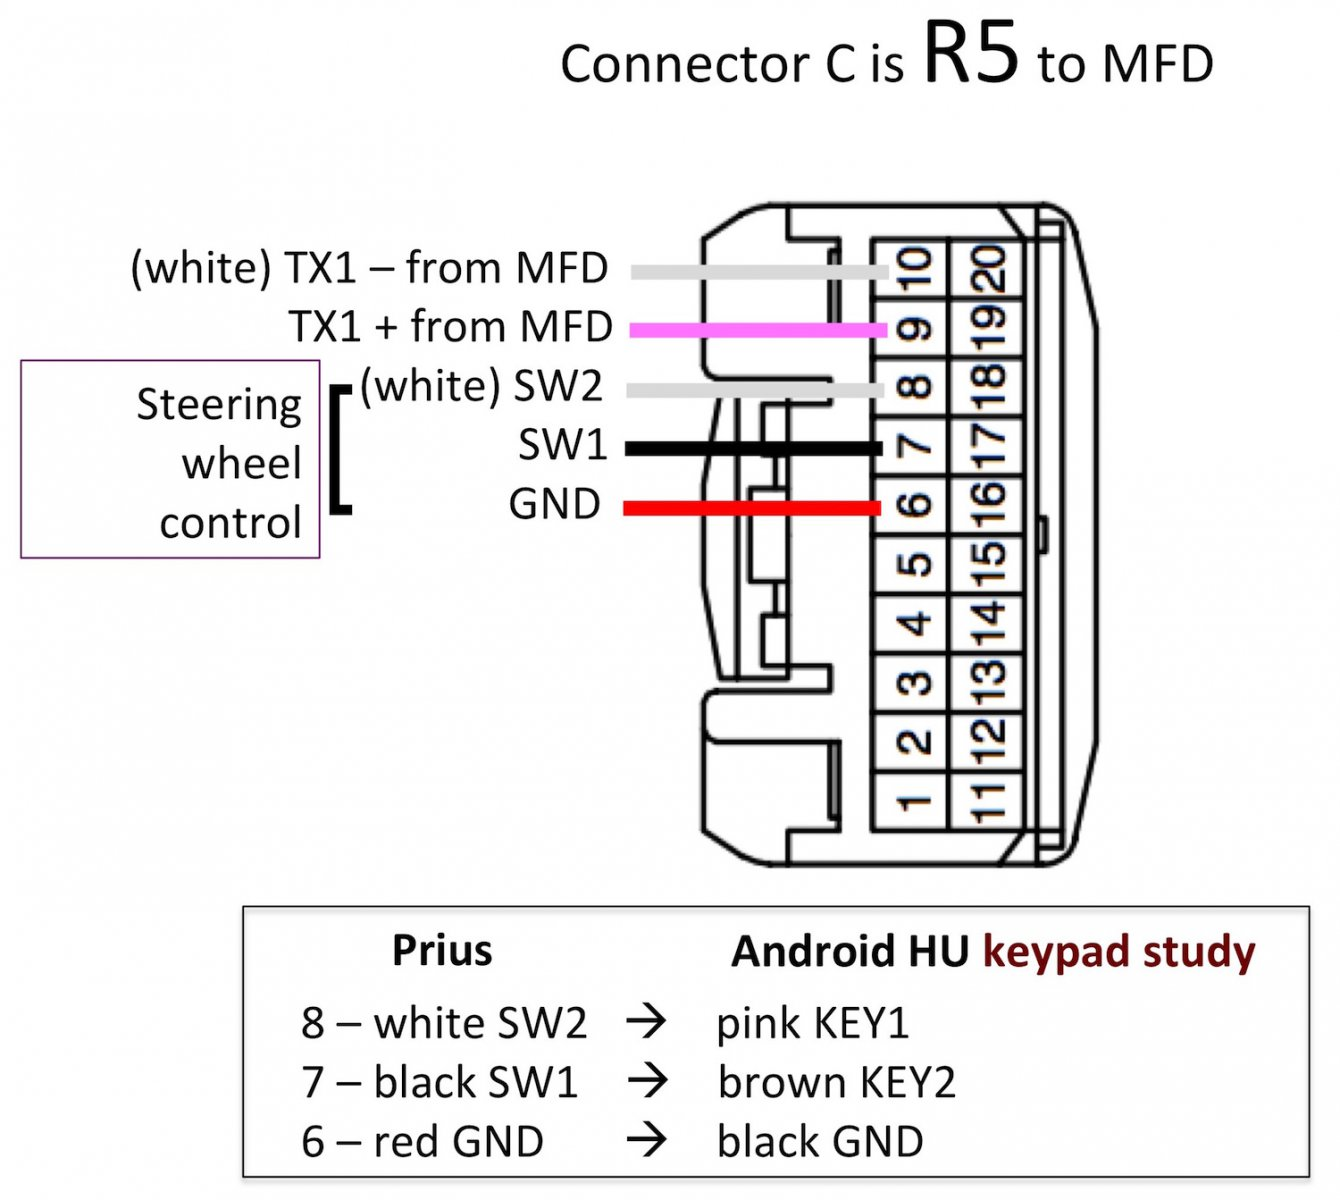 Steering Wheel Control With Android Hu Without Metra Aswc Interface on 2000 Jeep Grand Cherokee Radio Wiring Diagram